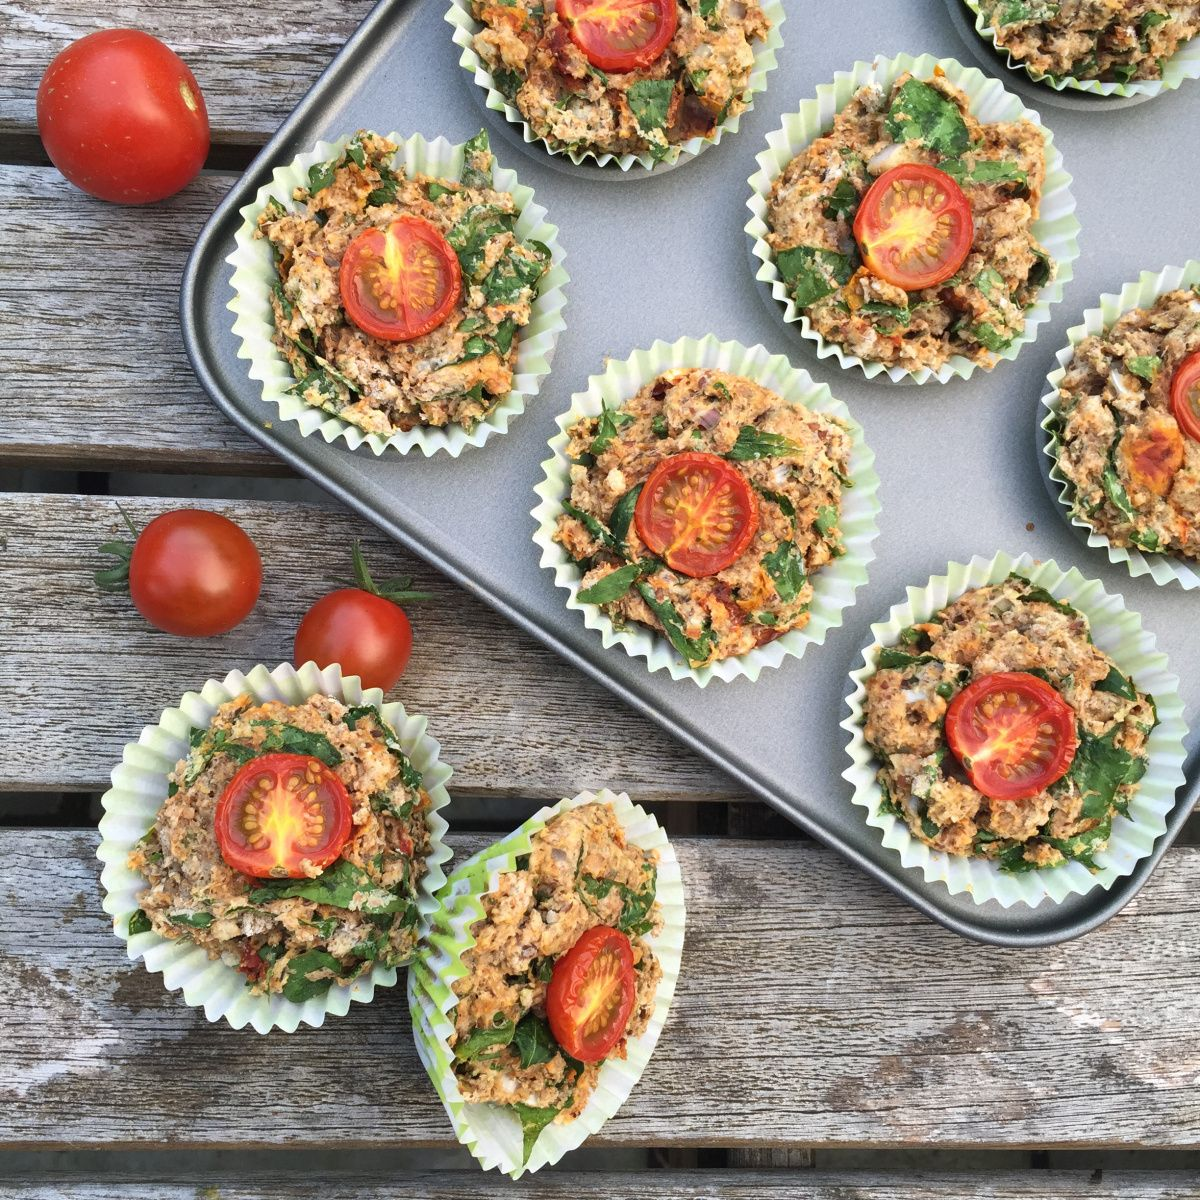 Spinach and Tomato Savoury Muffins